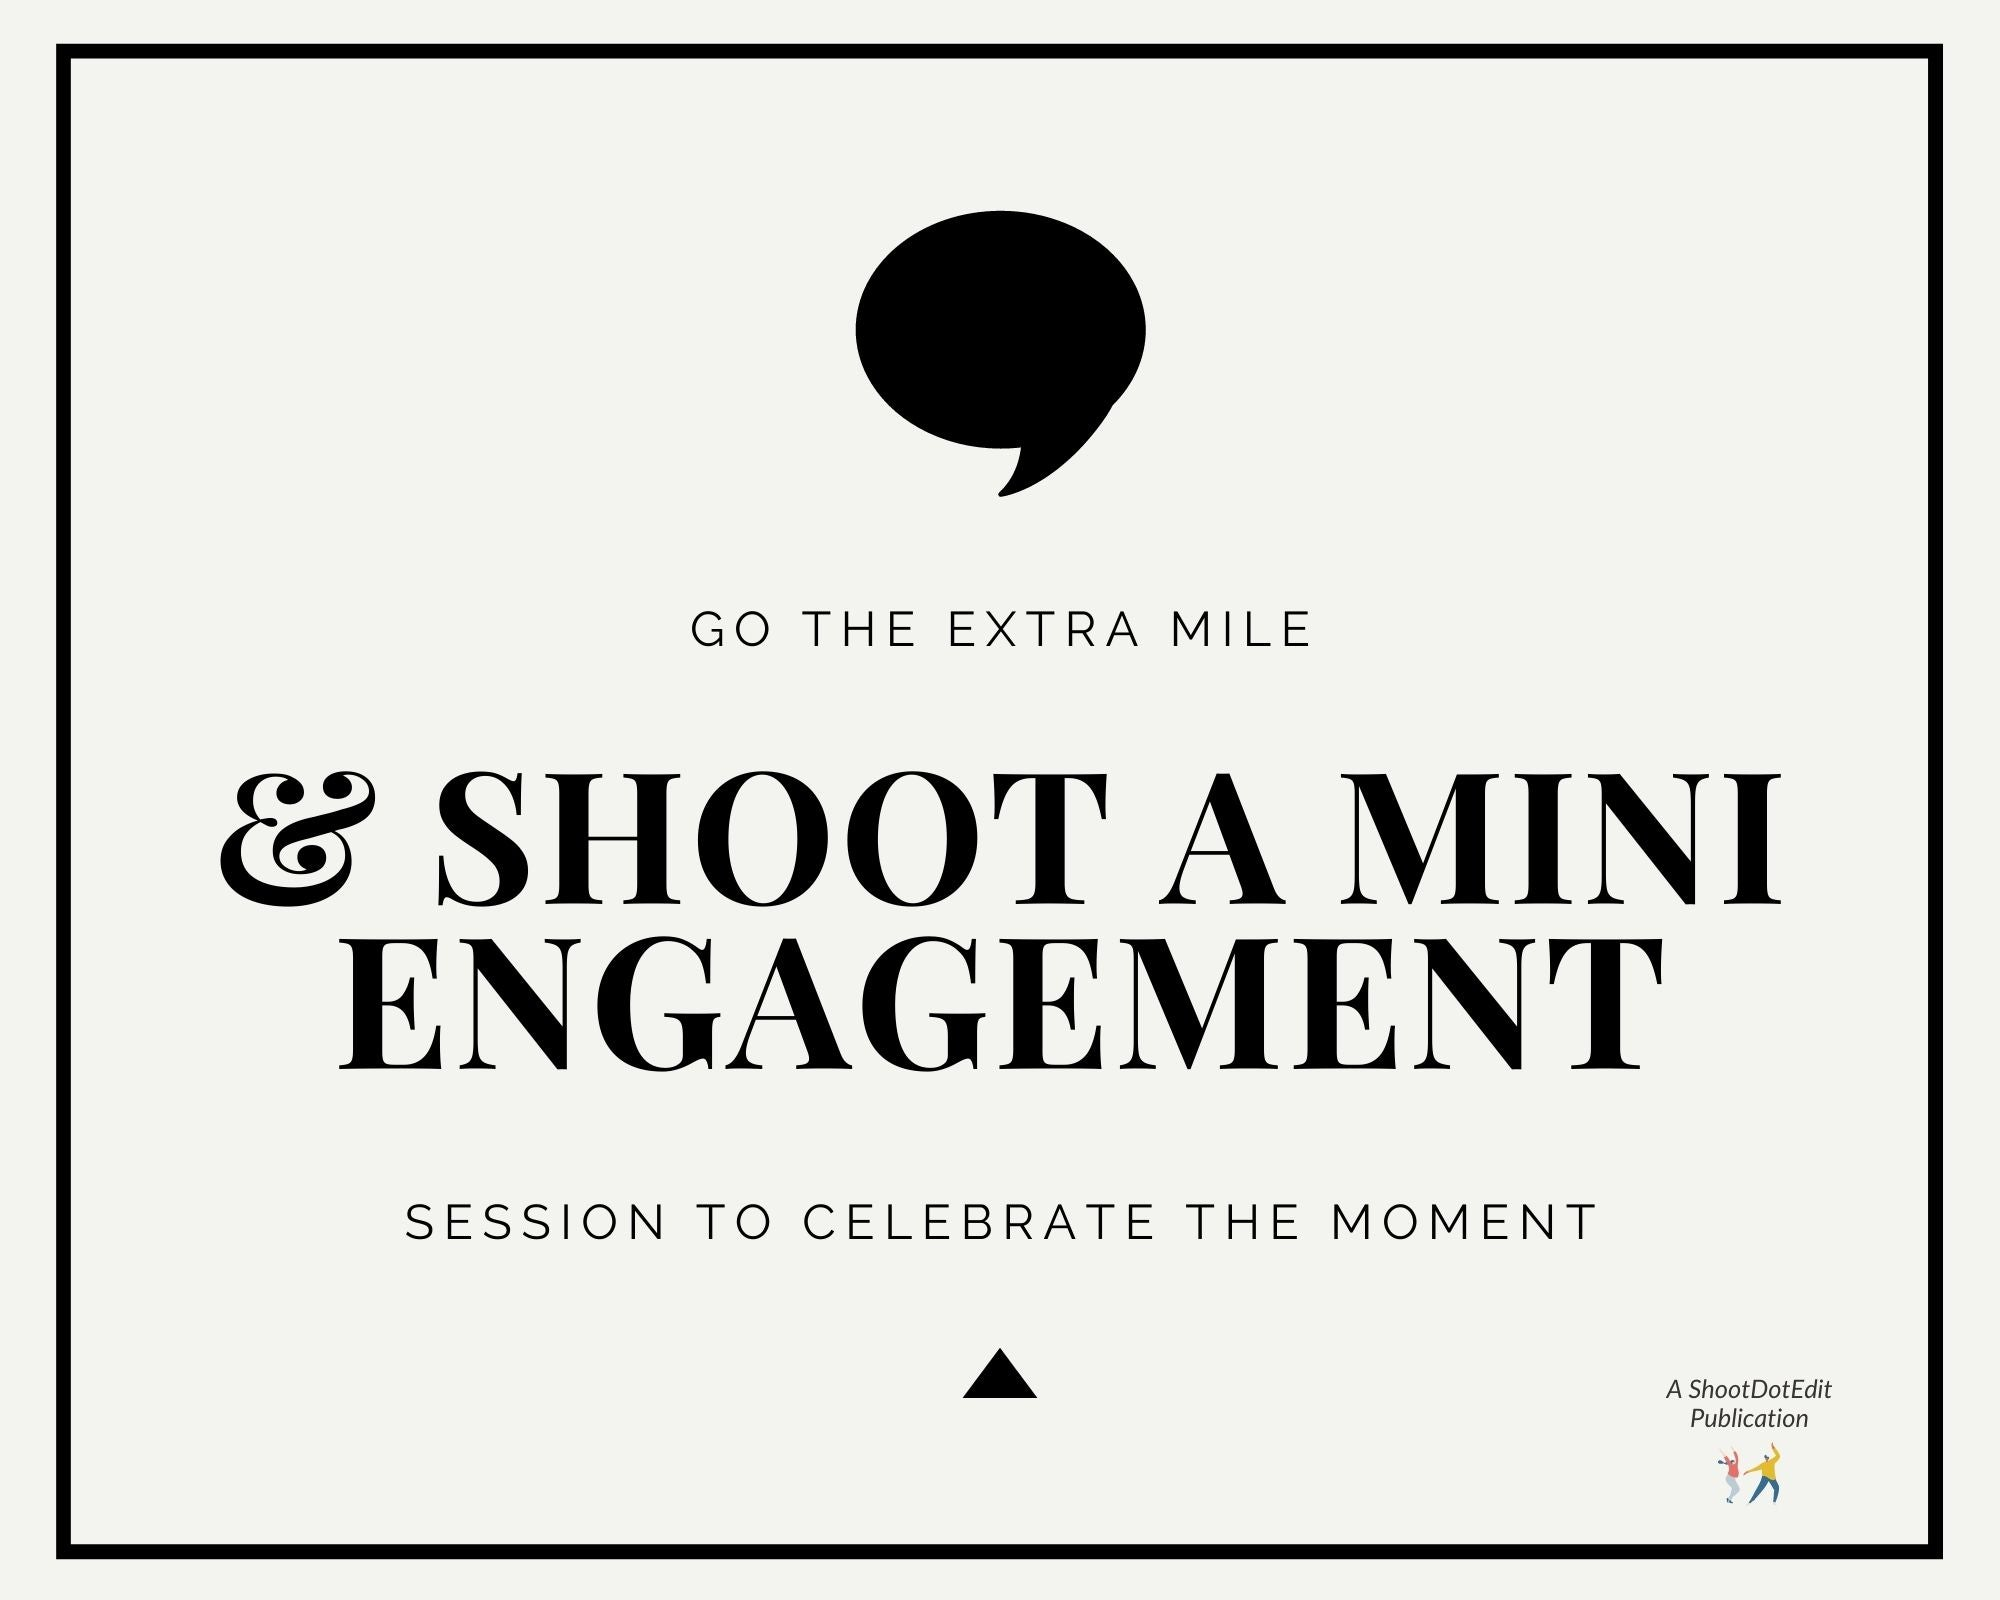 Infographic stating go the extra mile and shoot a mini engagement session to celebrate the moment